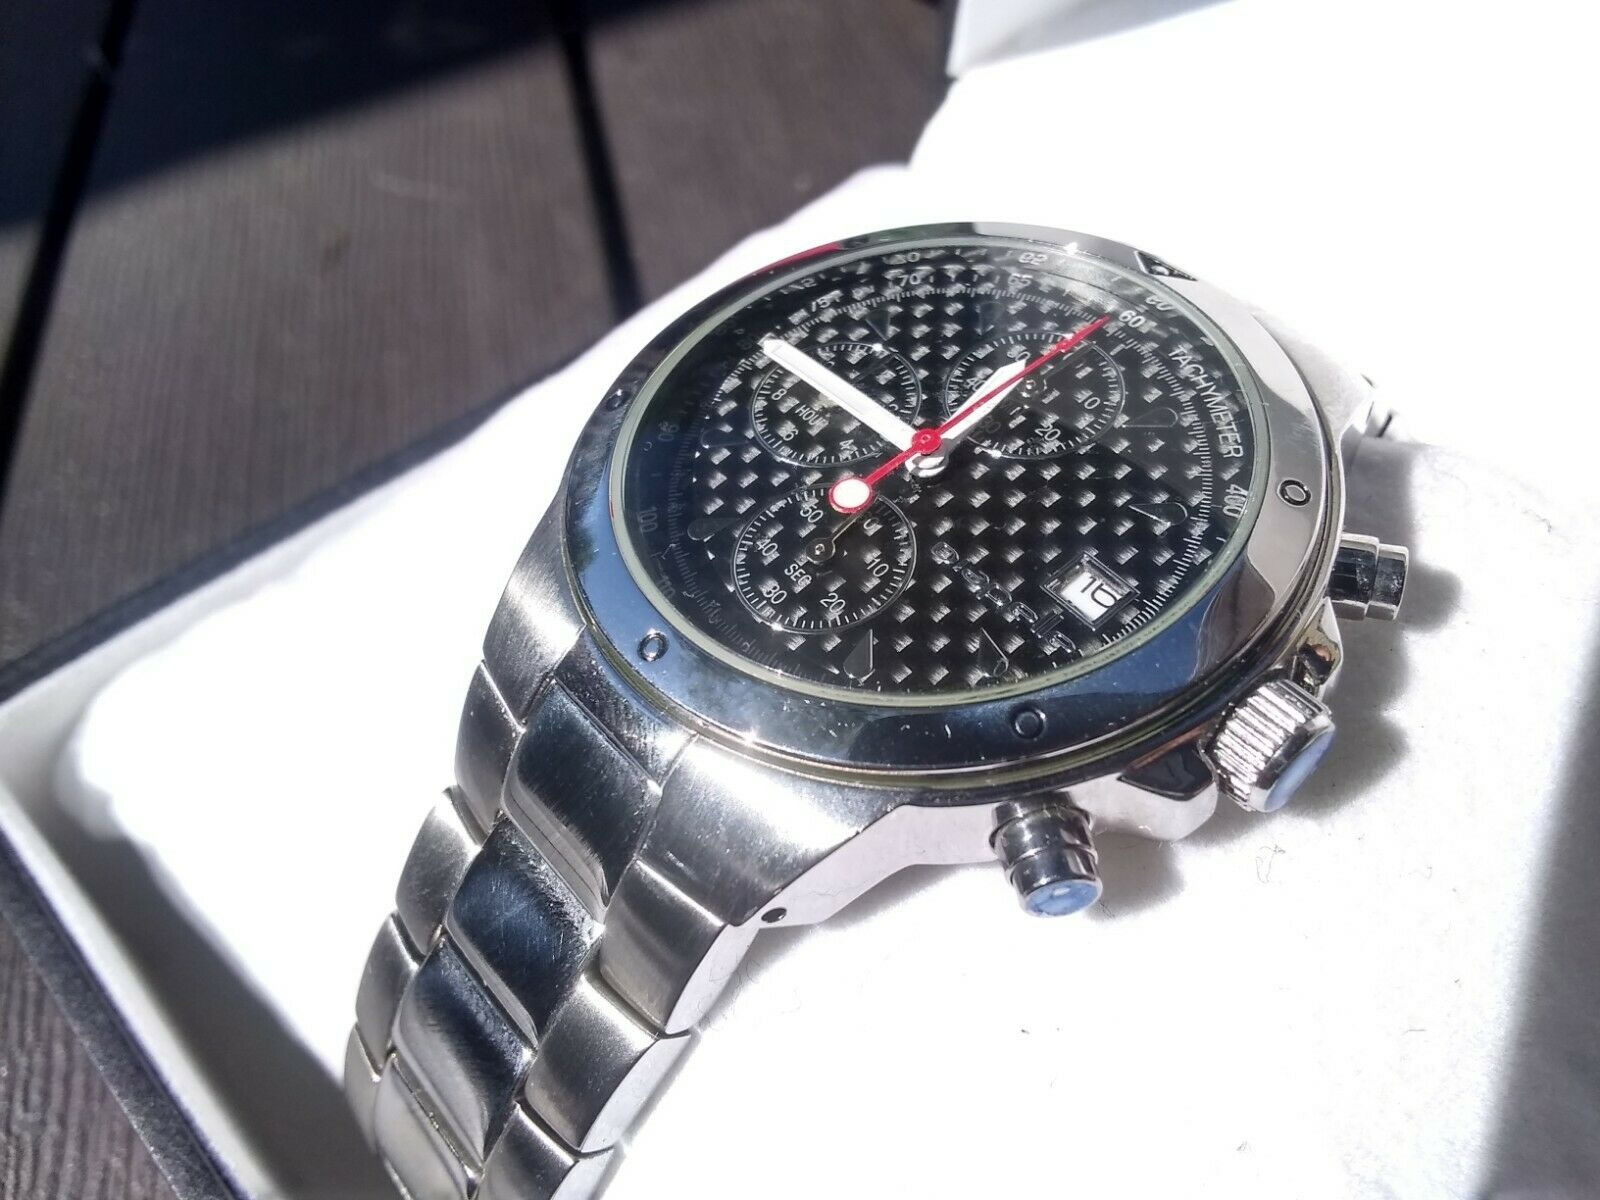 REAL Genuine Carbon Fiber Face Wrist Watch Chronograph with Genuine Japan Miyota (Citizen) Quartz Movement and 38mm Dial